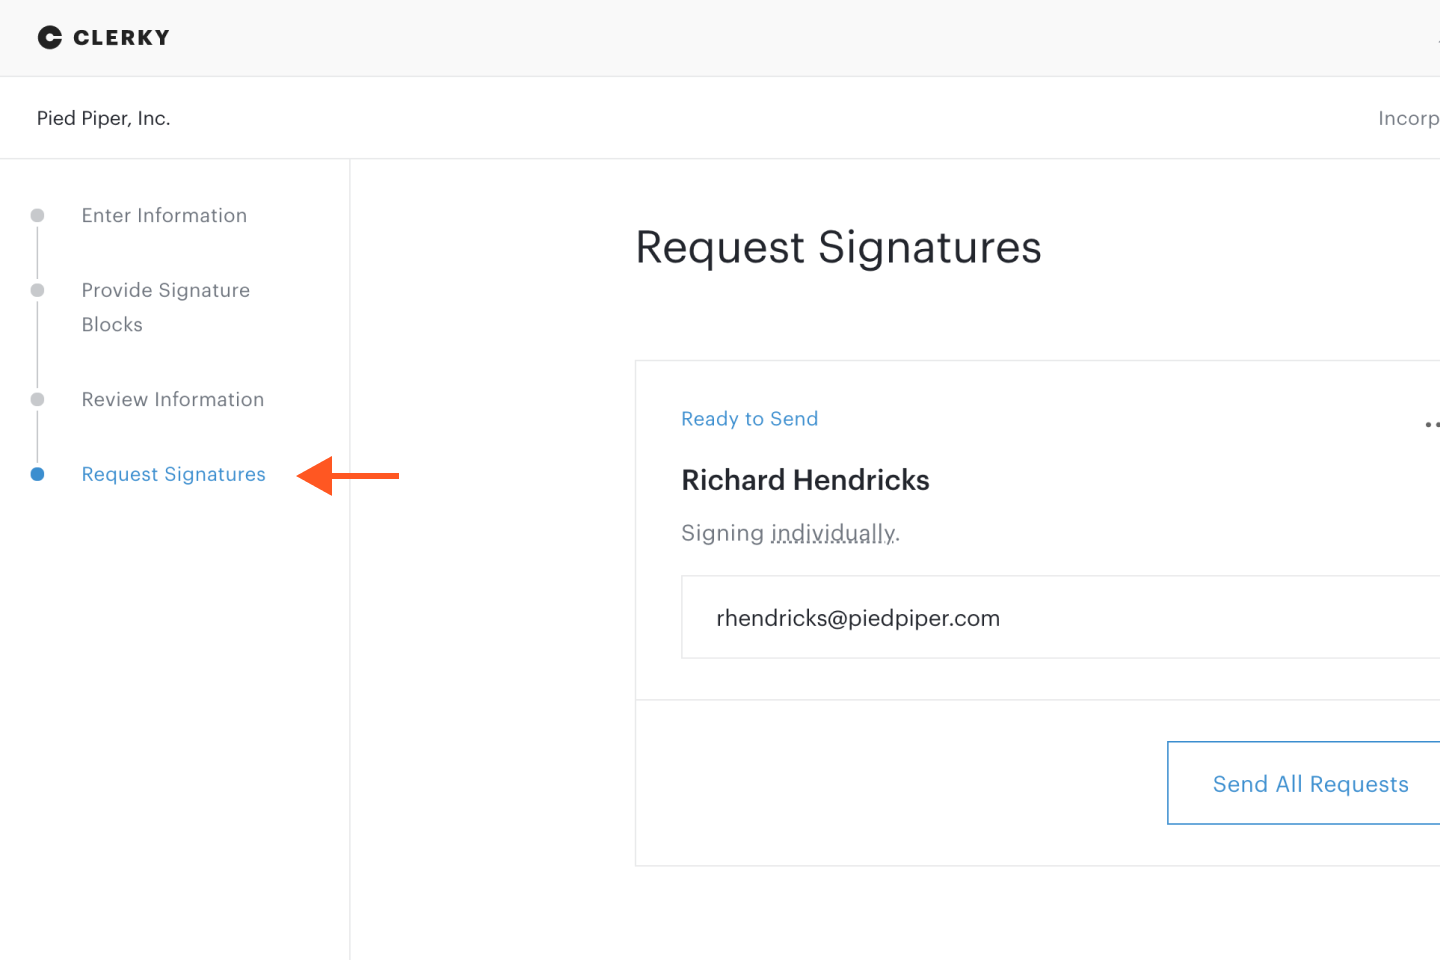 Request Signatures step on document set workflow step list